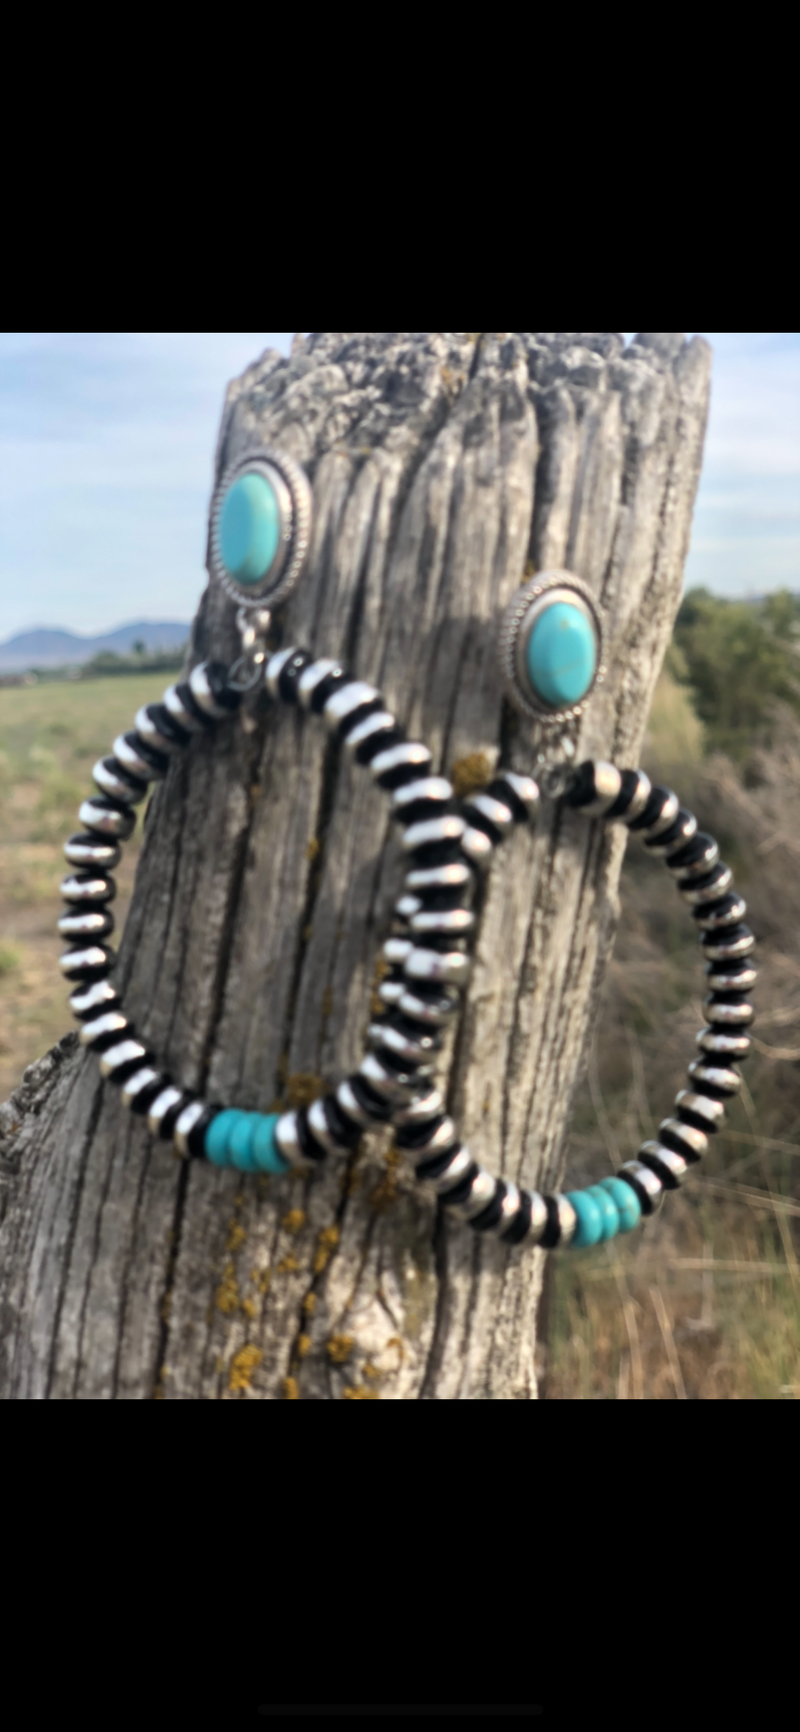 The Amarillo Turquoise & Navajo Hoop Earrings